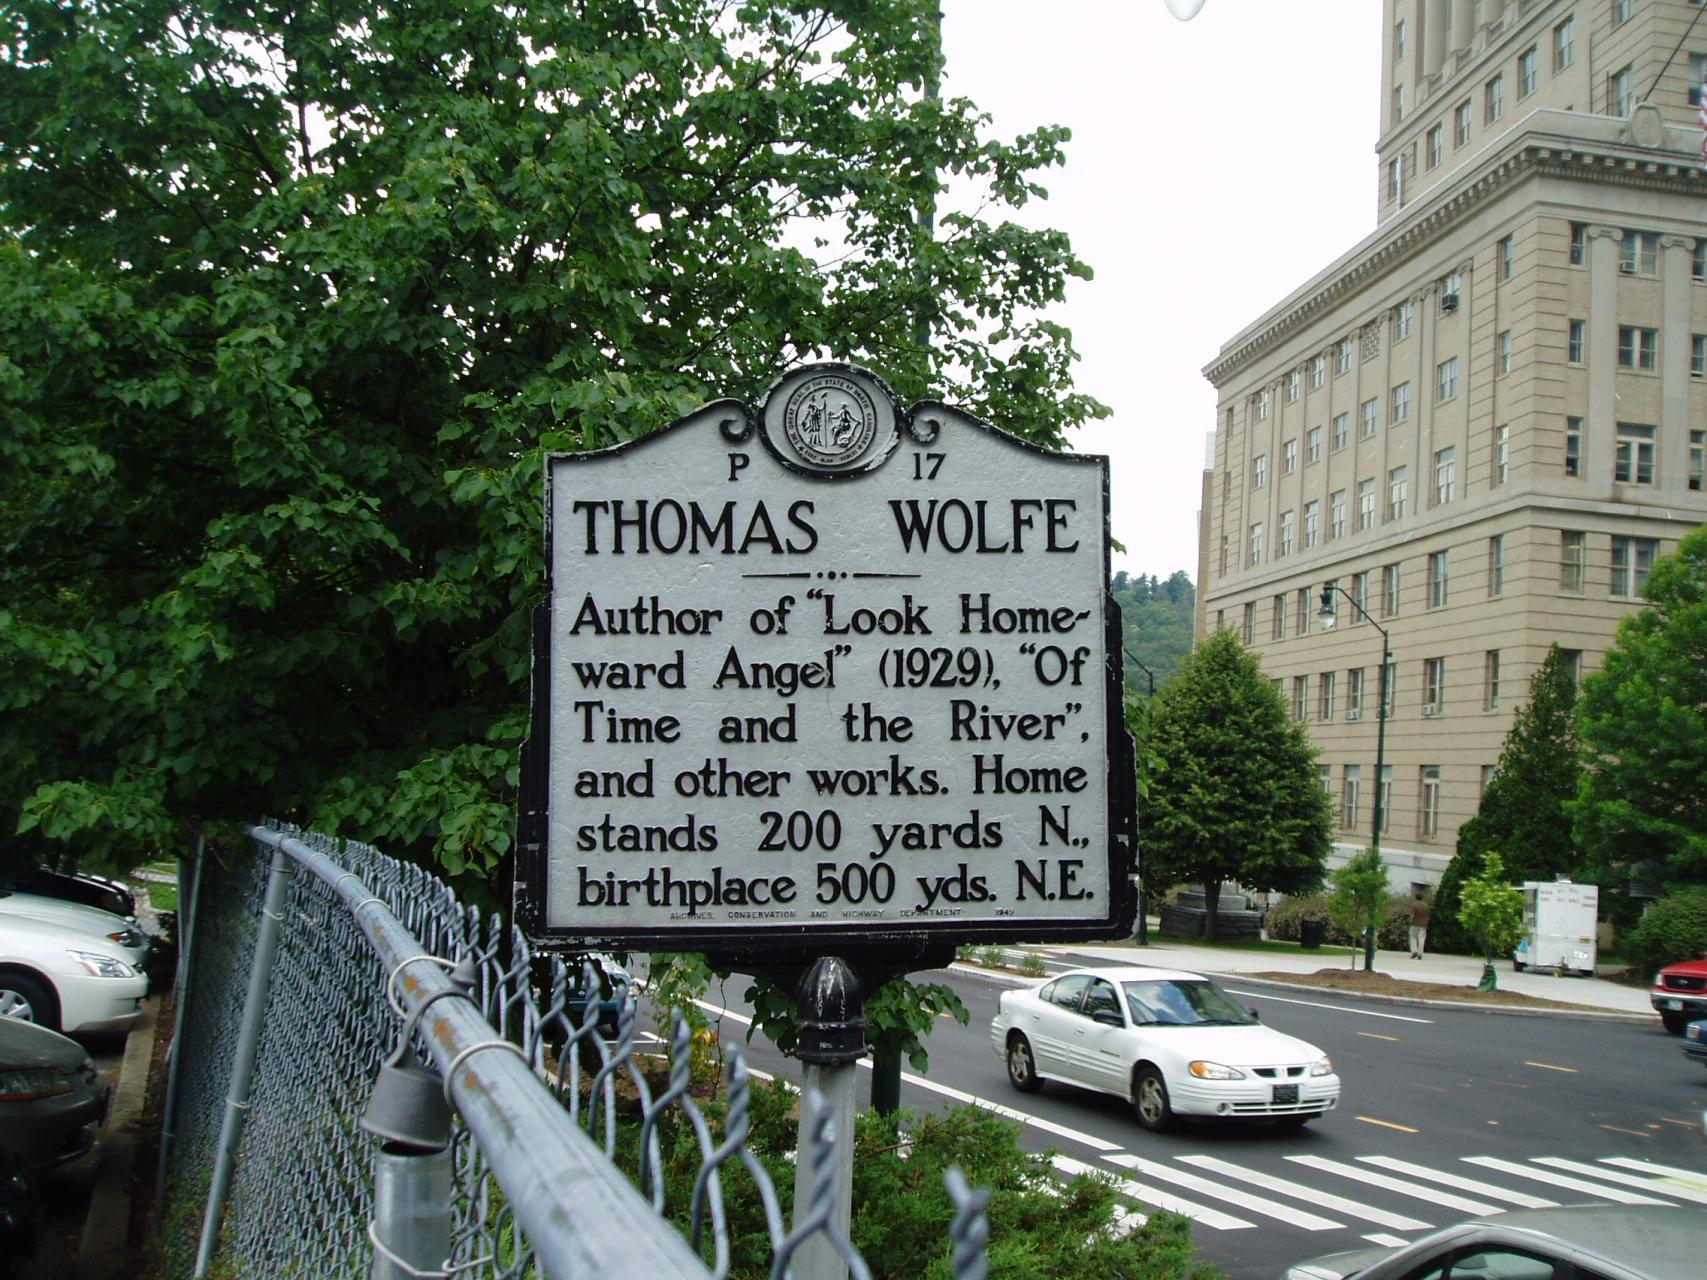 Historic Marker for writer Thomas Wolfe